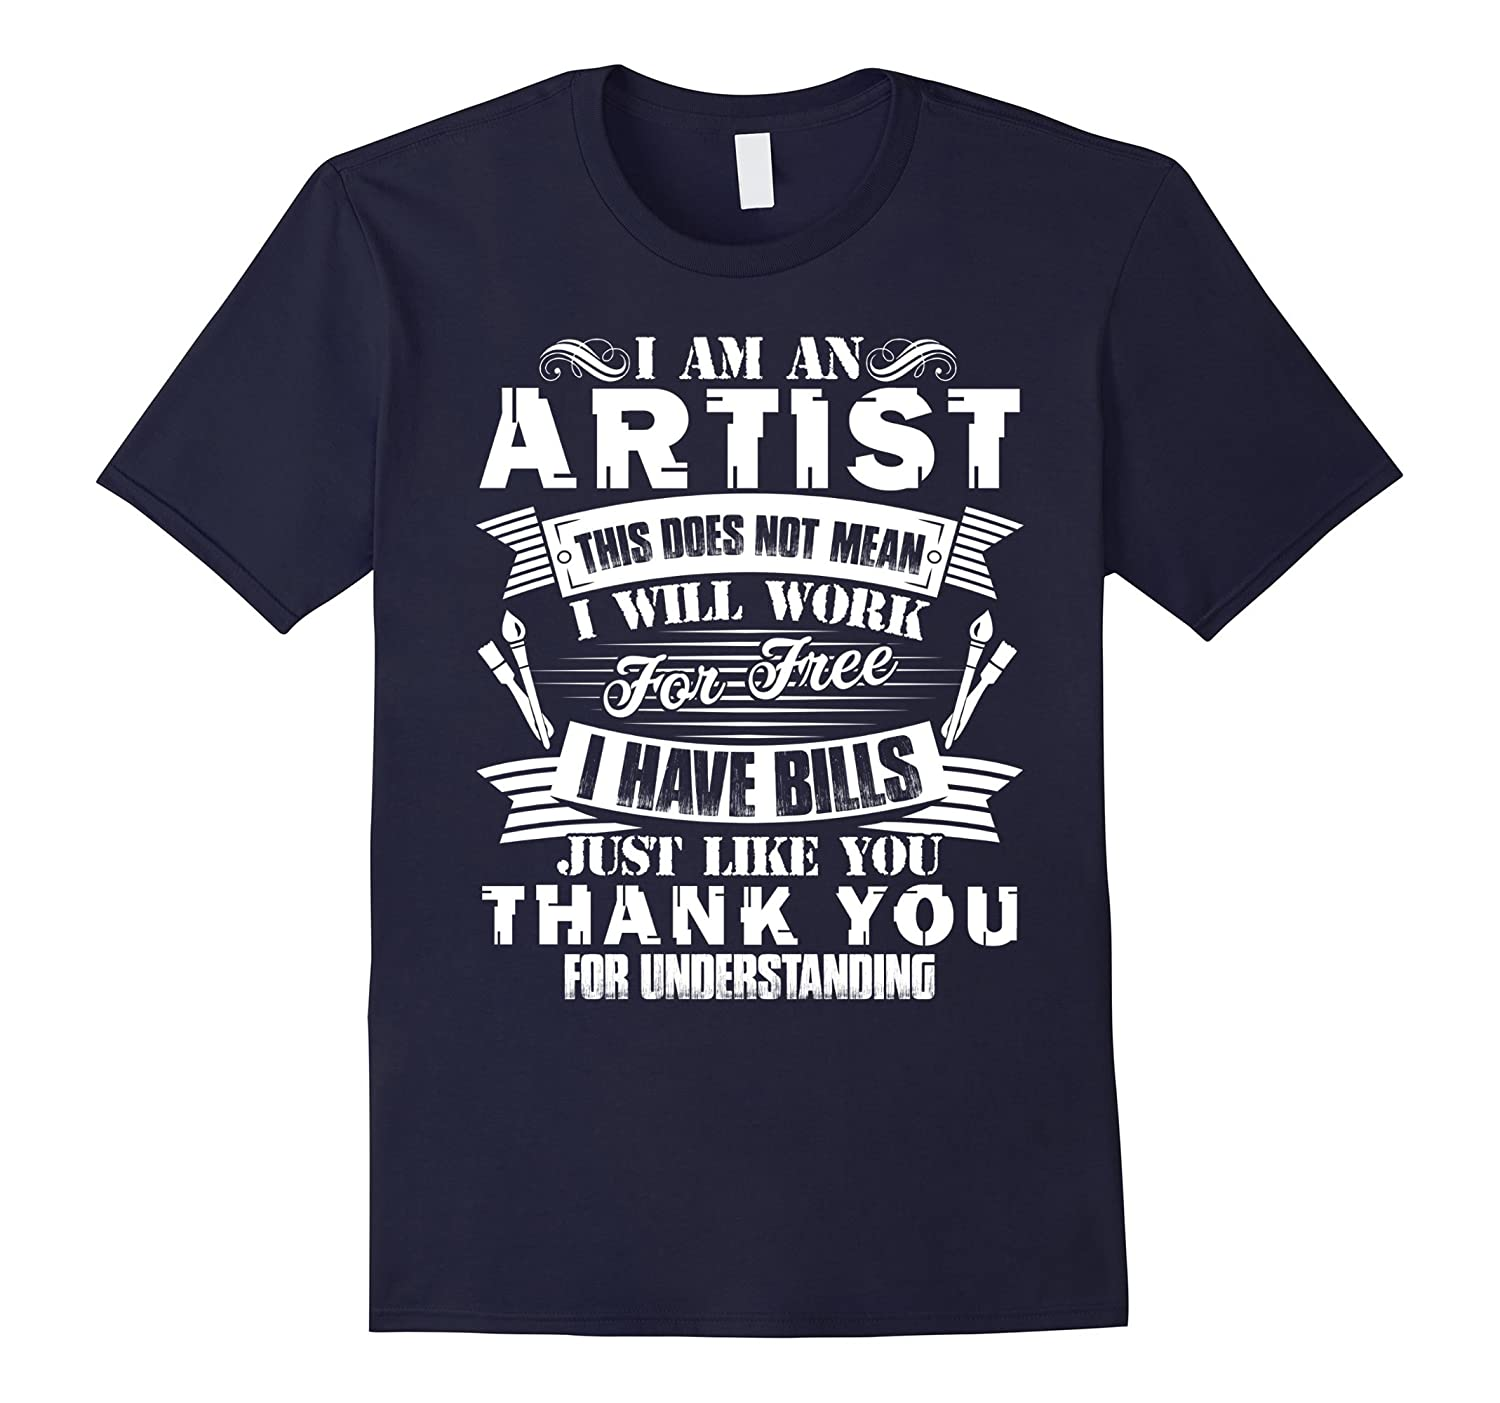 Artist Shirts - I Am An Artist Tee Shirt-CL